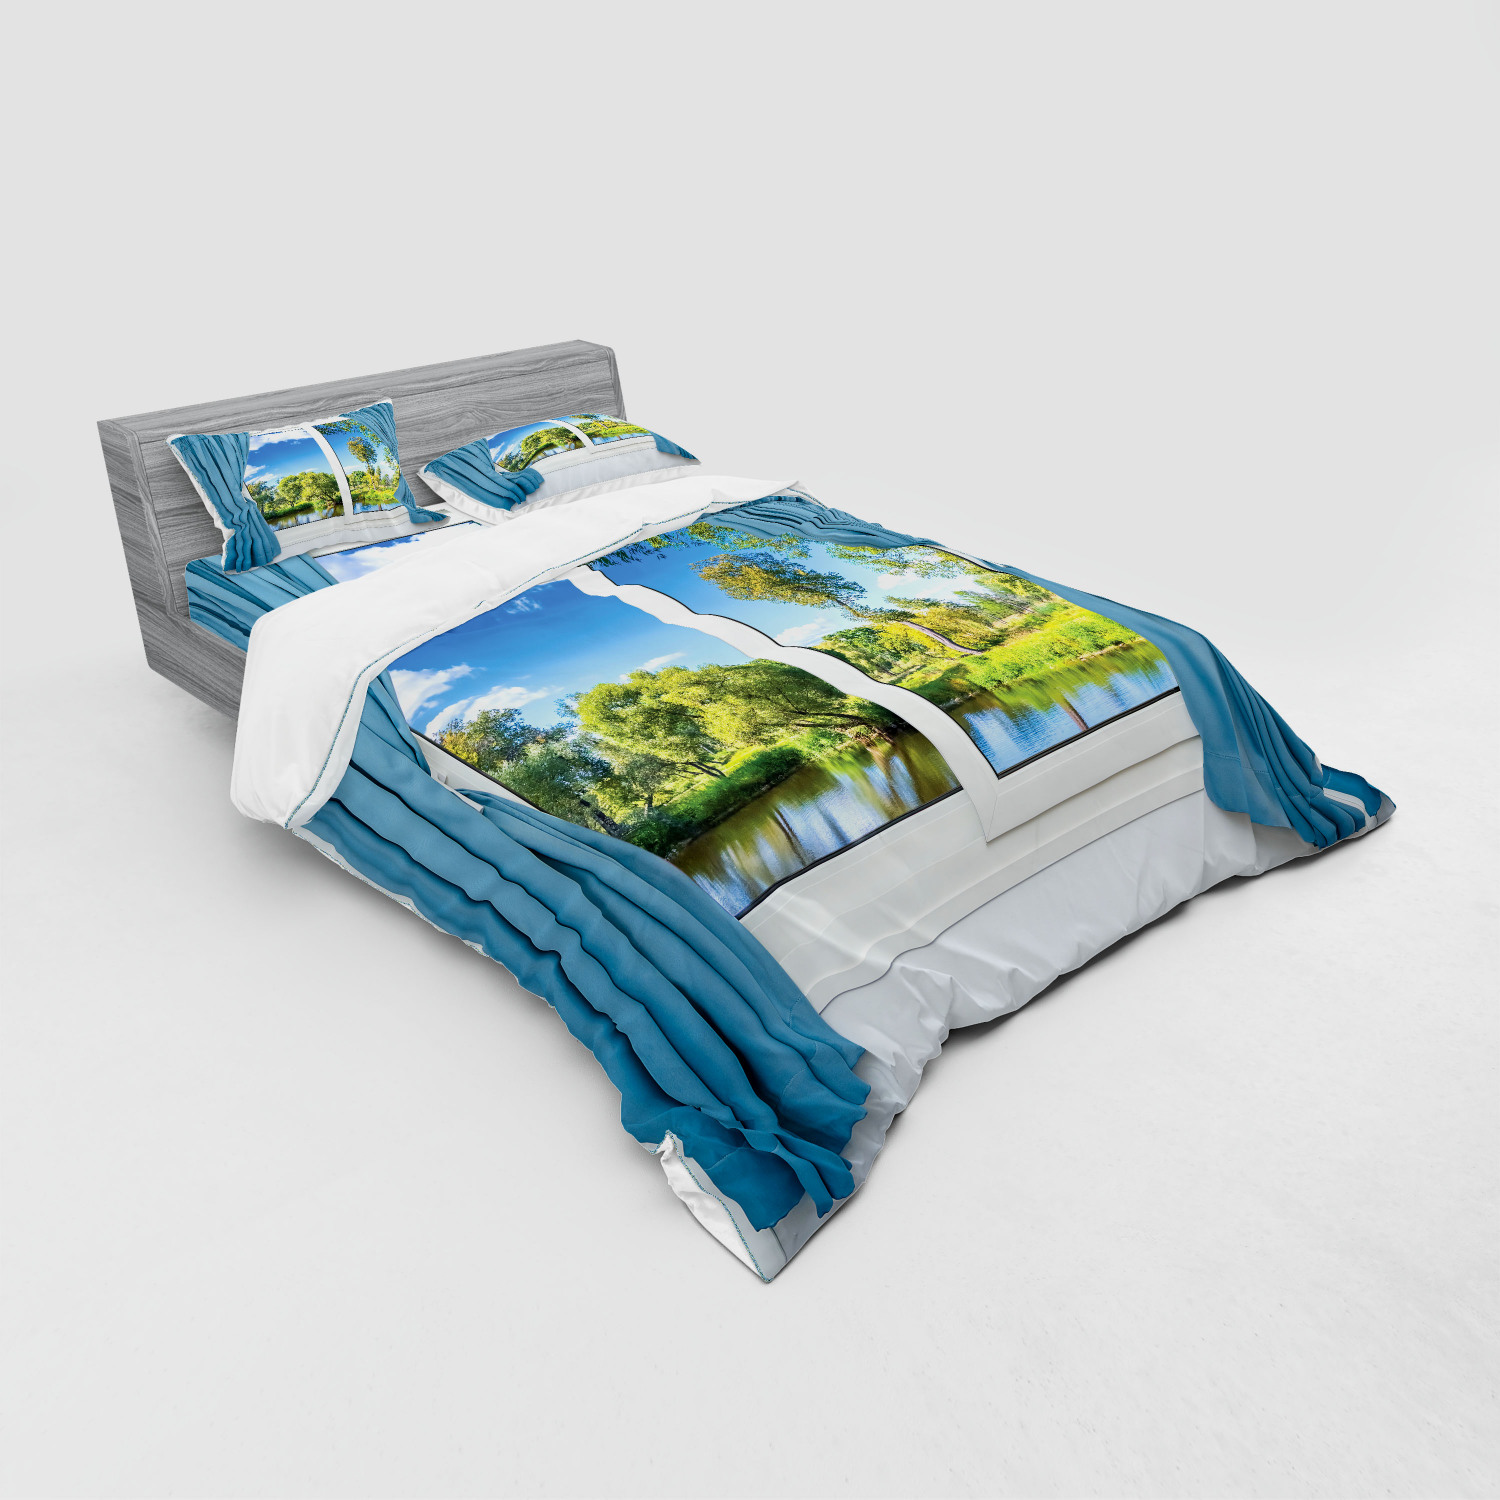 thumbnail 155 - Ambesonne Summer Bedding Set Duvet Cover Sham Fitted Sheet in 3 Sizes